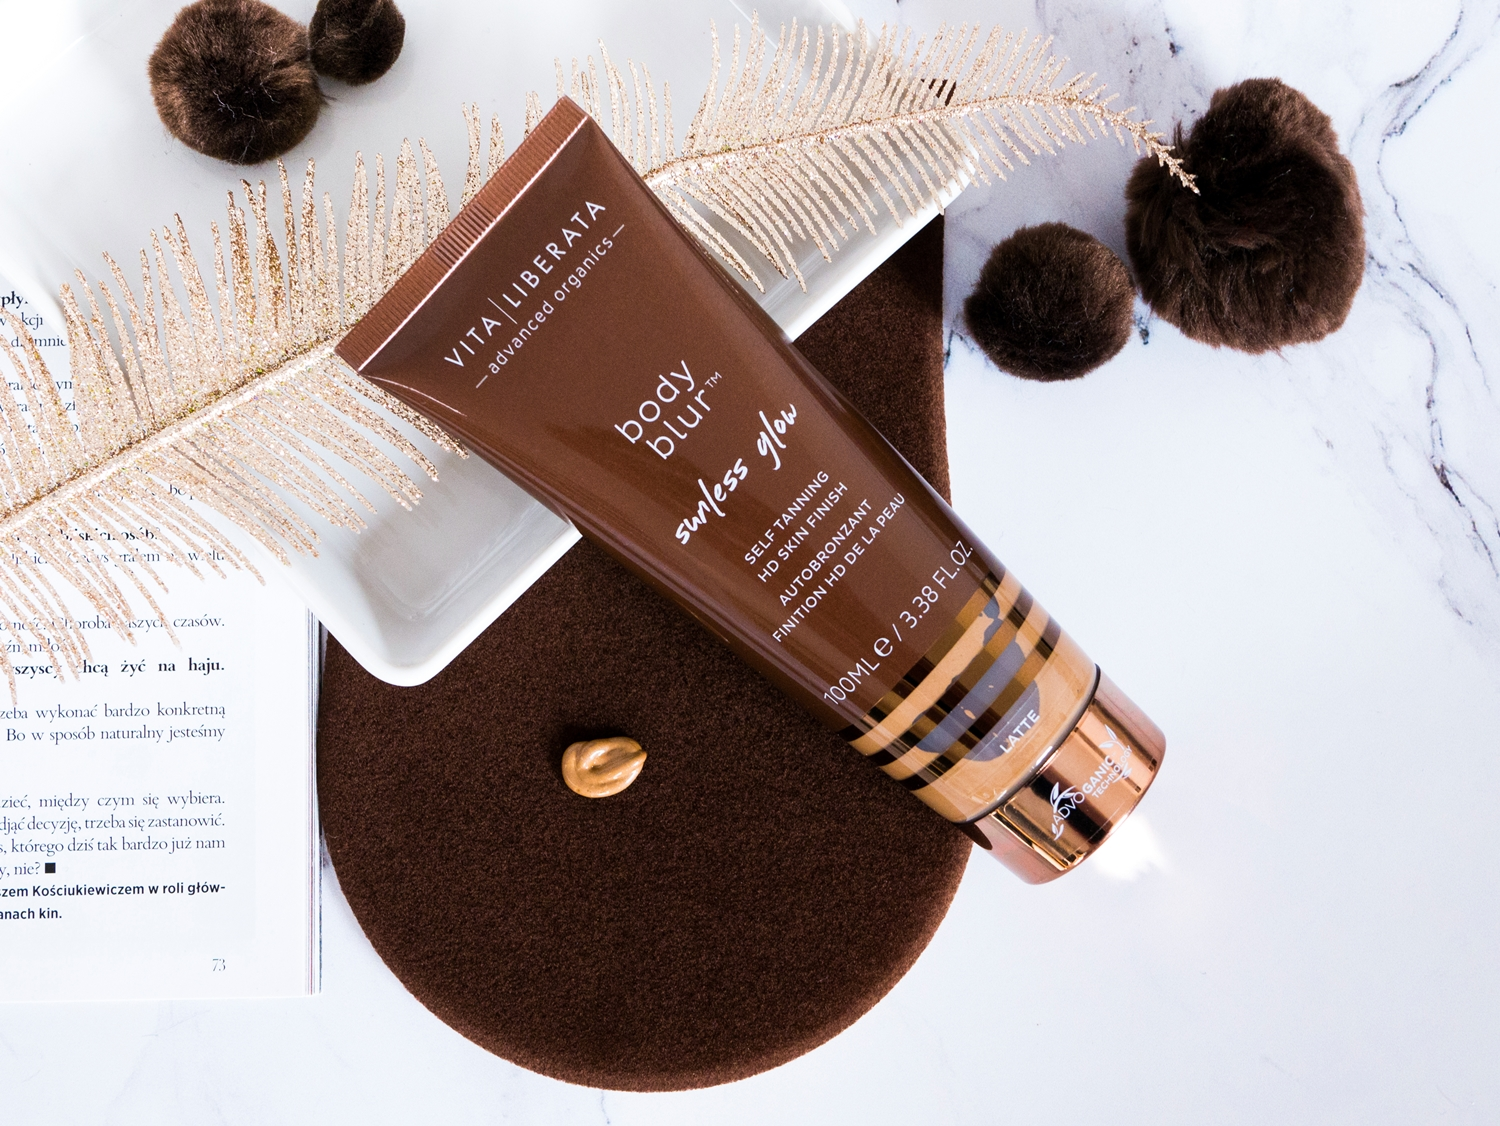 VITA LIBERATA|Body Blur Sunless Glow HD Skin Finish